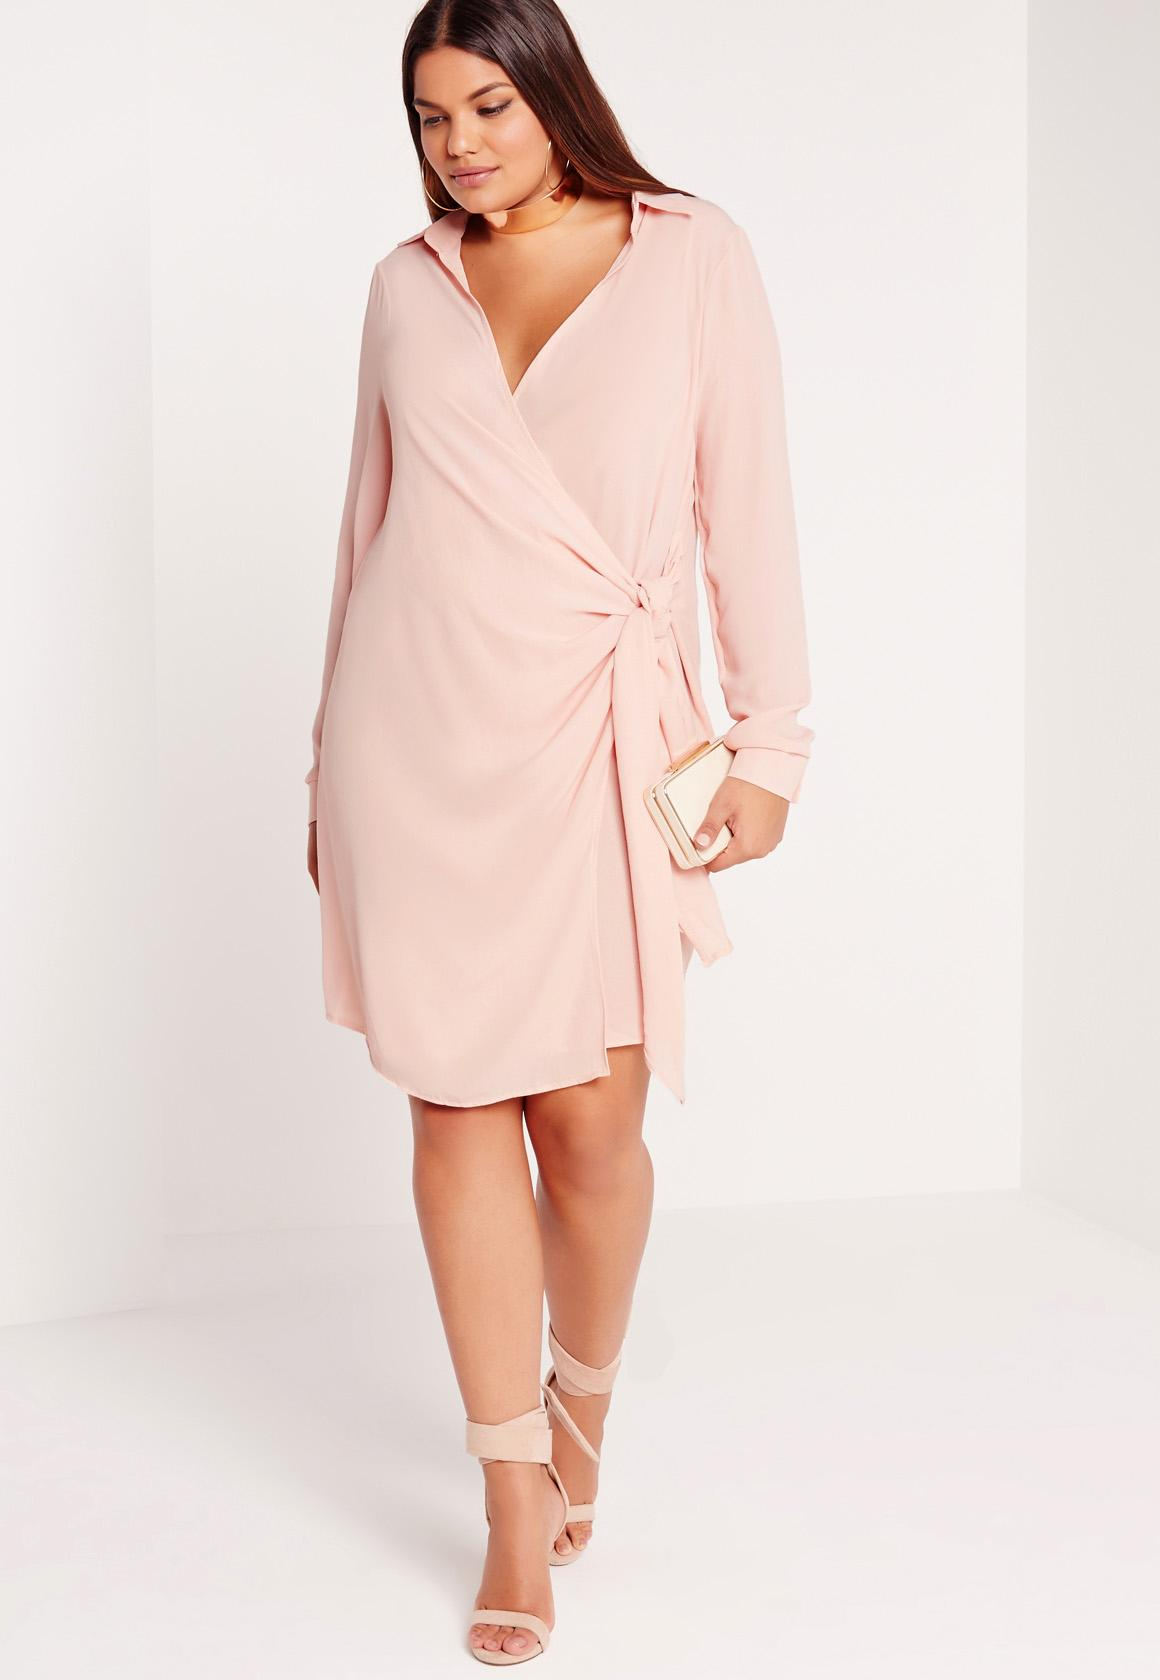 Plus Size Wrap Dress Nude - Missguided